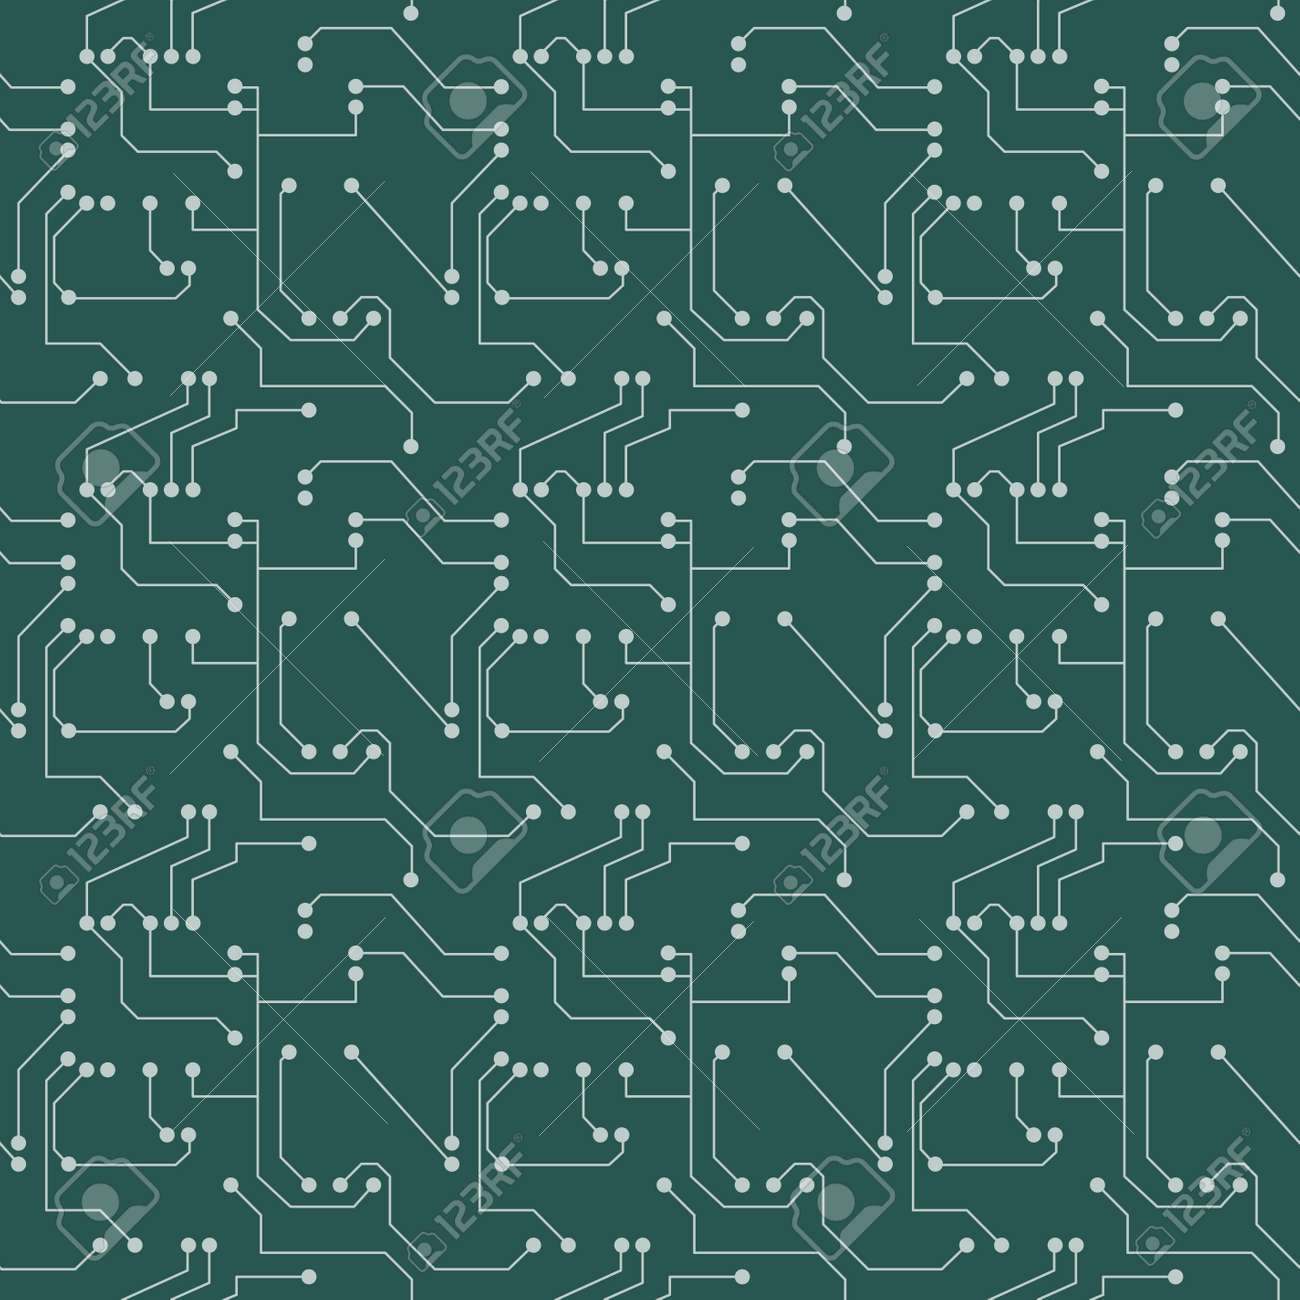 Seamless pattern. Computer circuit board or microchip background